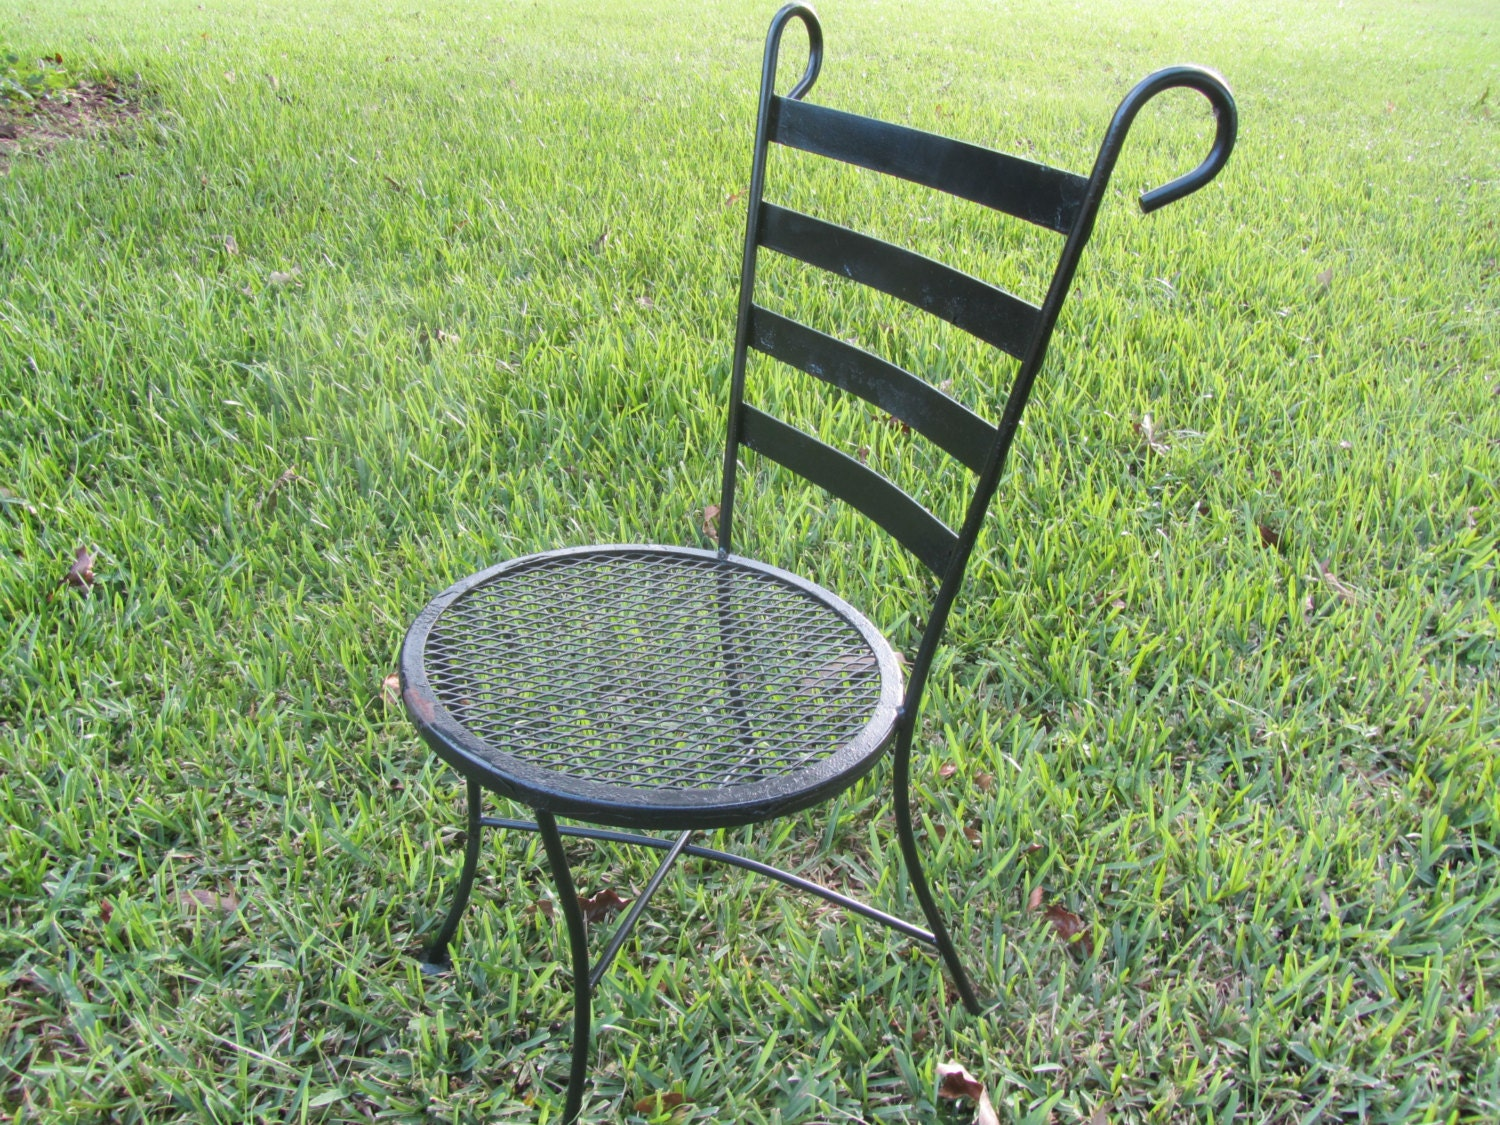 Vintage bistro chair wrought iron chair retro chair metal - Vintage wrought iron chairs ...